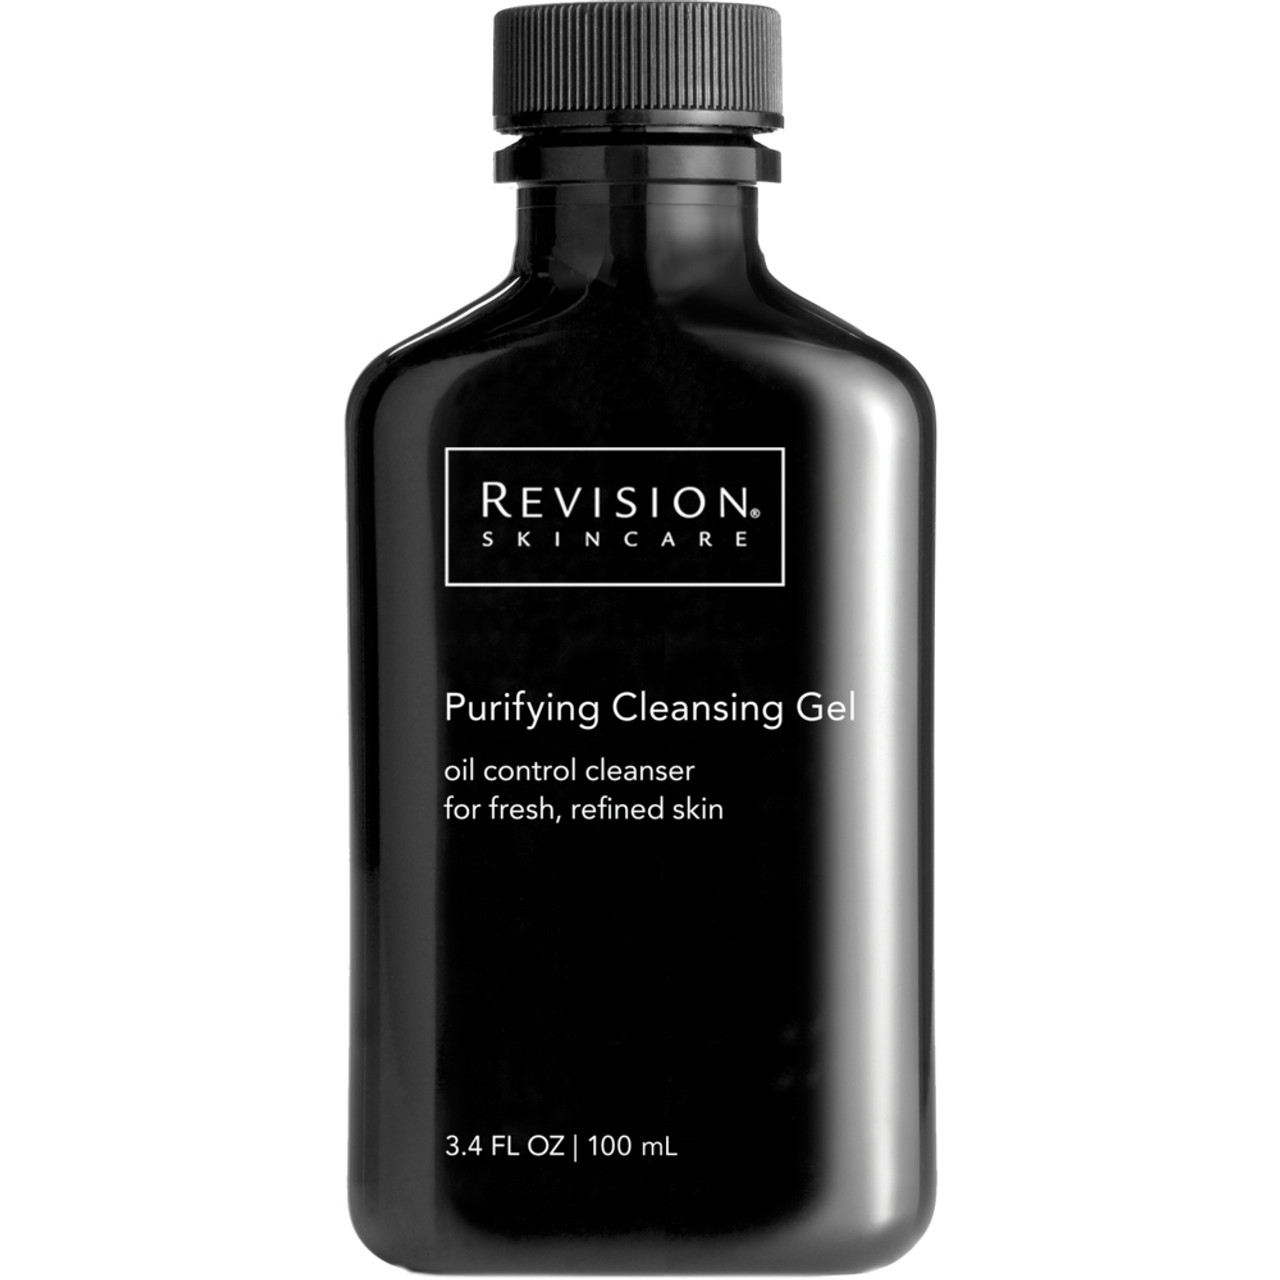 Revision Purifying Cleansing Gel BeautifiedYou.com